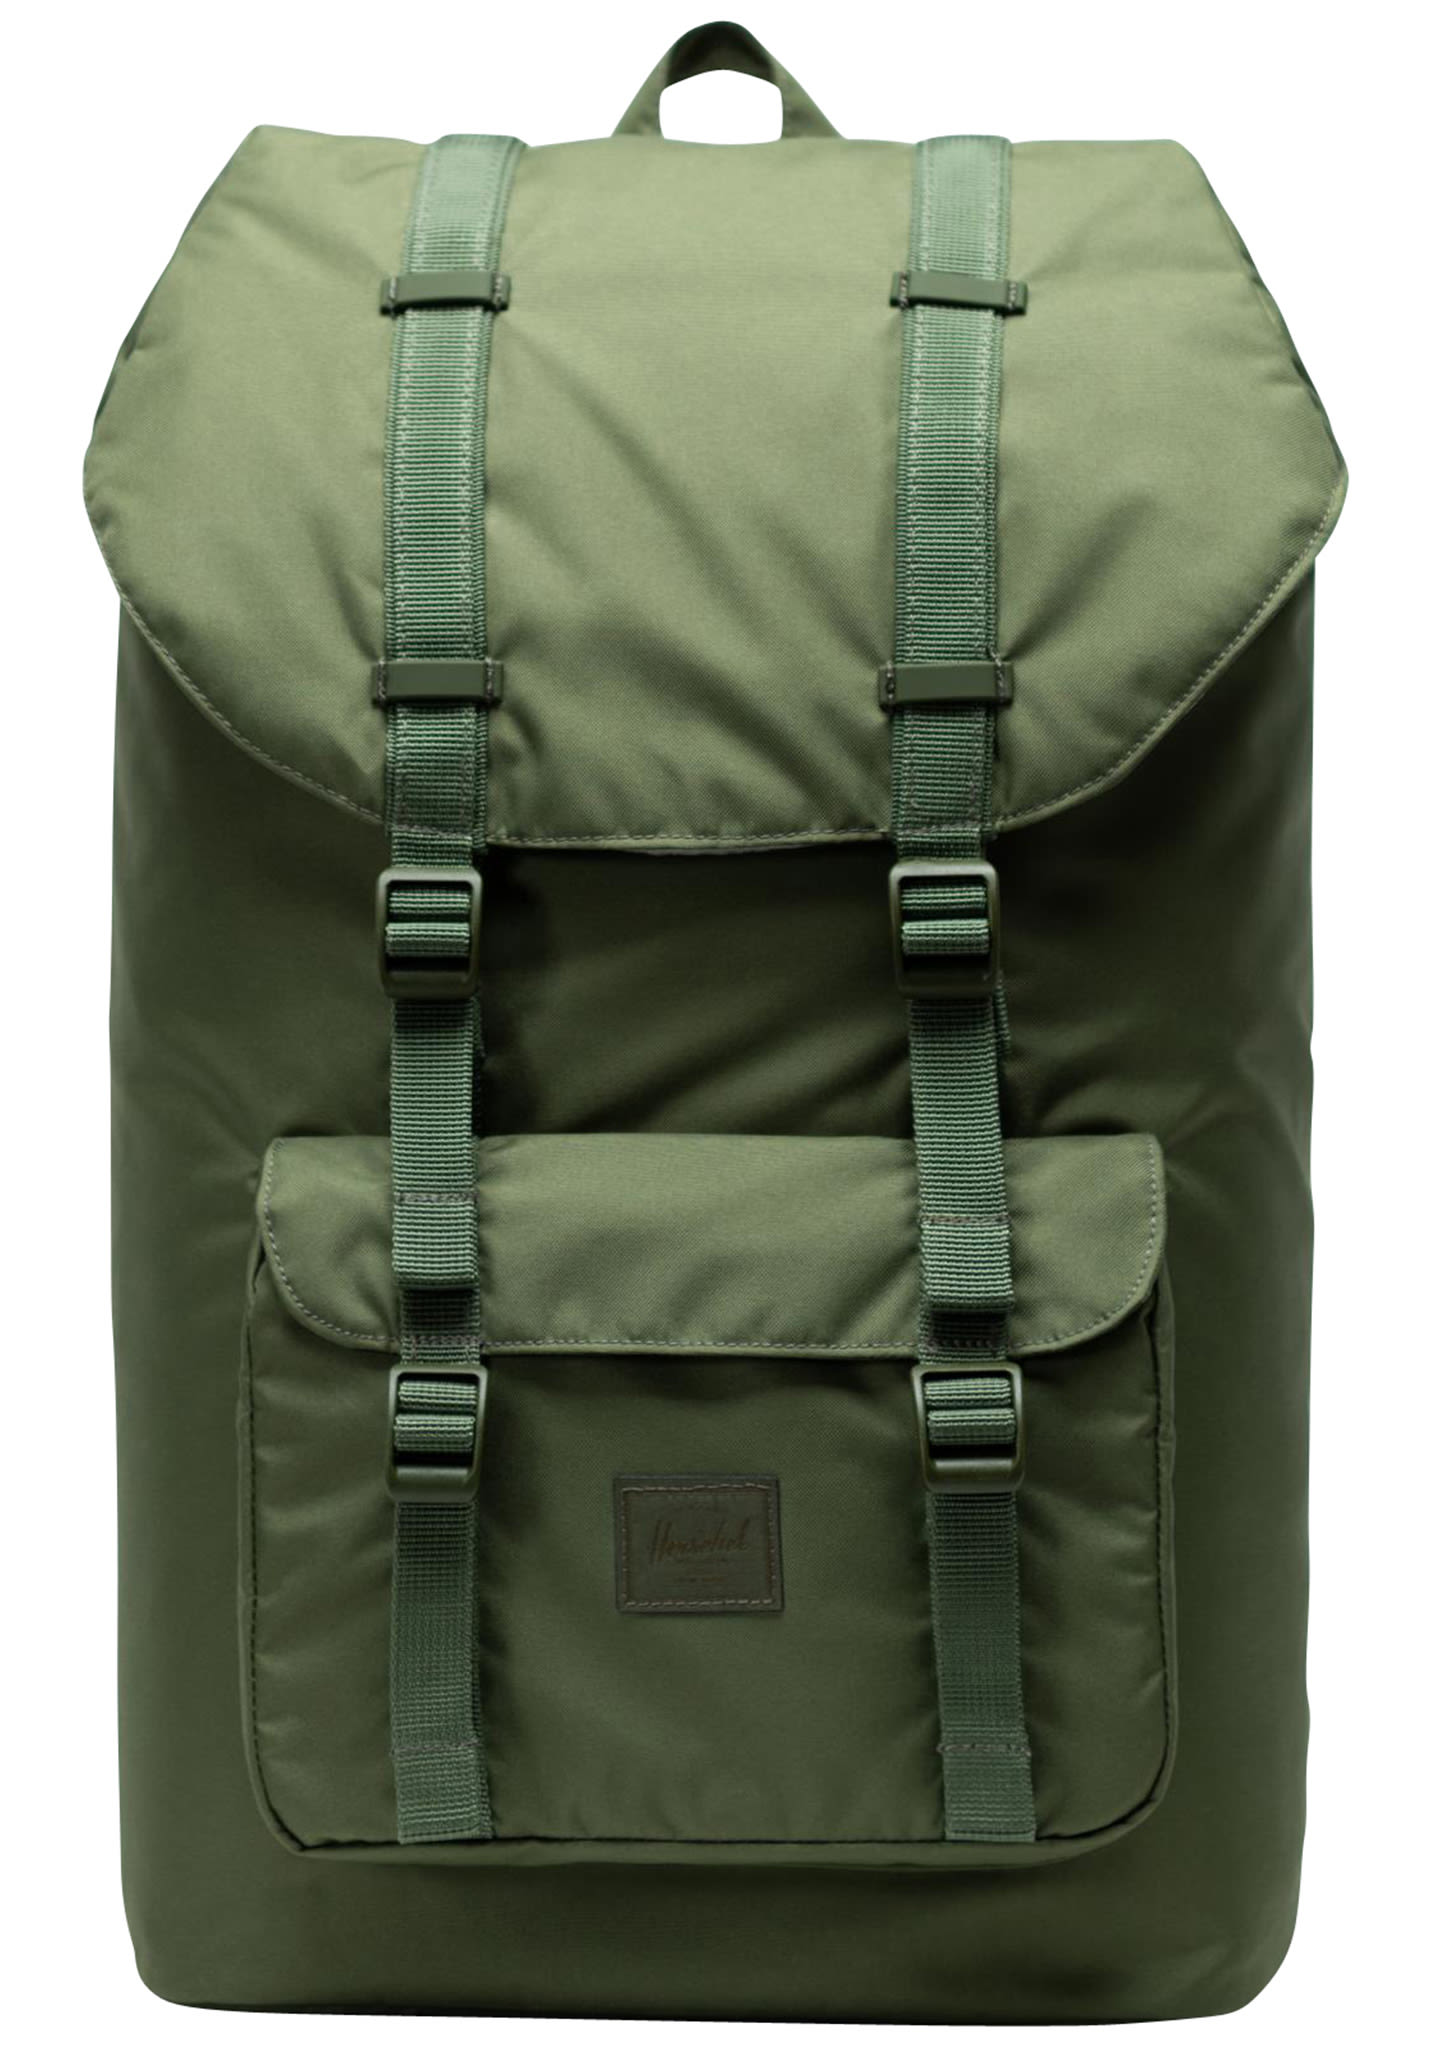 9b10d76ca5d HERSCHEL SUPPLY CO Little America Light 25L - Sac à dos - Vert - Planet  Sports